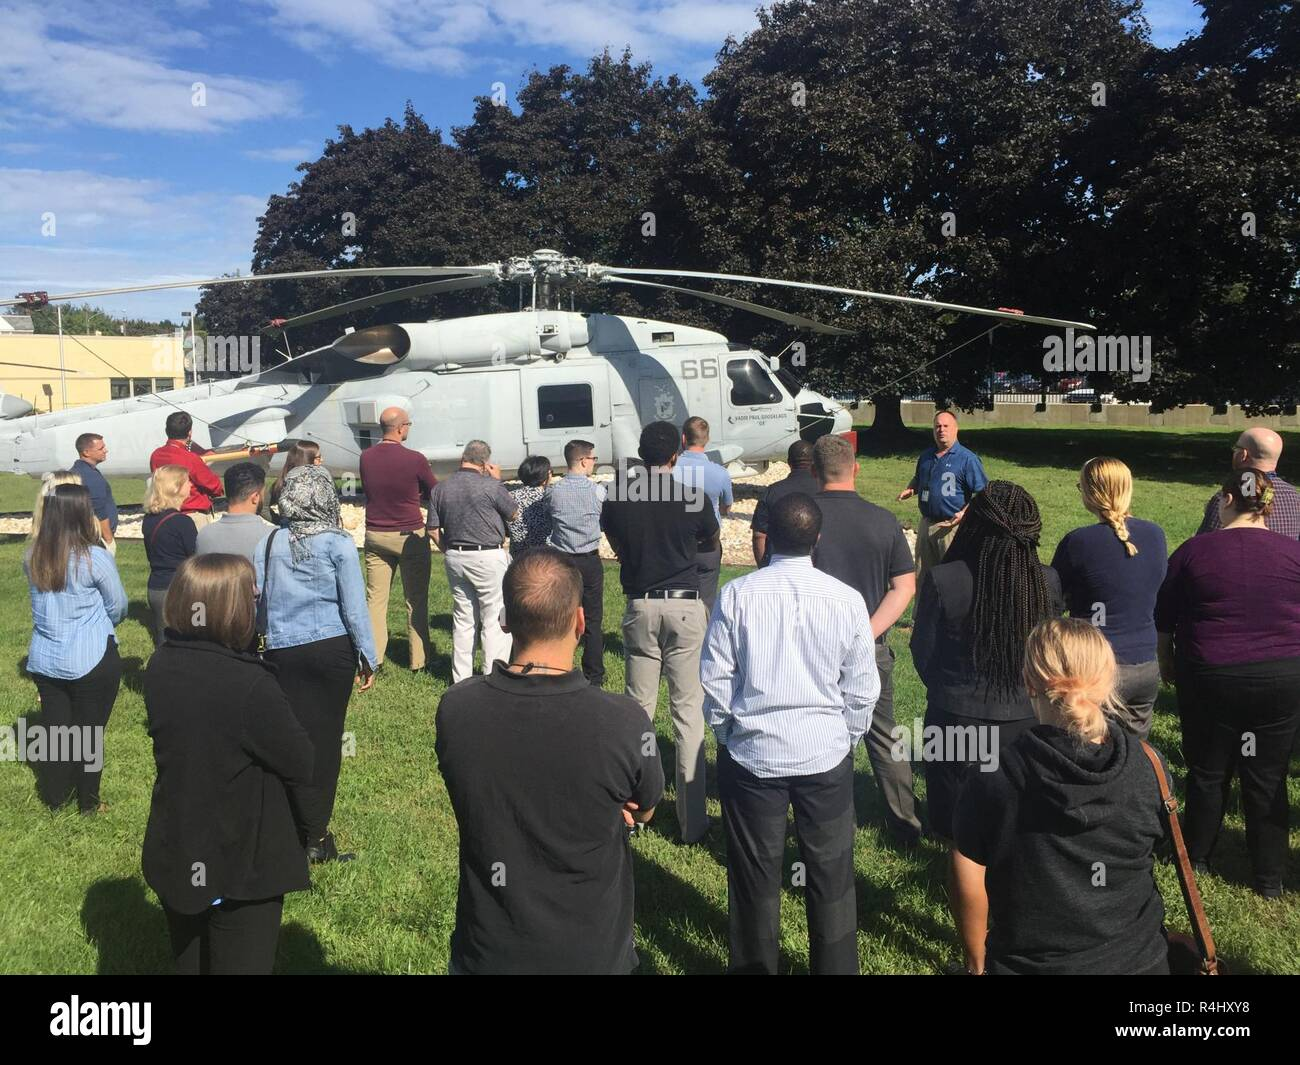 PHILADELPHIA (Sep. 27, 2018) – Newer employees of NAVSUP Weapon Systems Support were provided a tour and description of the aircraft adorning the front lawn of NAVSUP WSS's Building 1 as part of a week-long NAVSUP WSS academy recently held in late September to provide employees a better appreciation and understanding of the organization and its role as the Navy's Program Support Inventory Control Point. Nearly 50 NAVSUP WSS employees gathered for the 48th NAVSUP WSS Academy, held in Philadelphia. Stock Photo